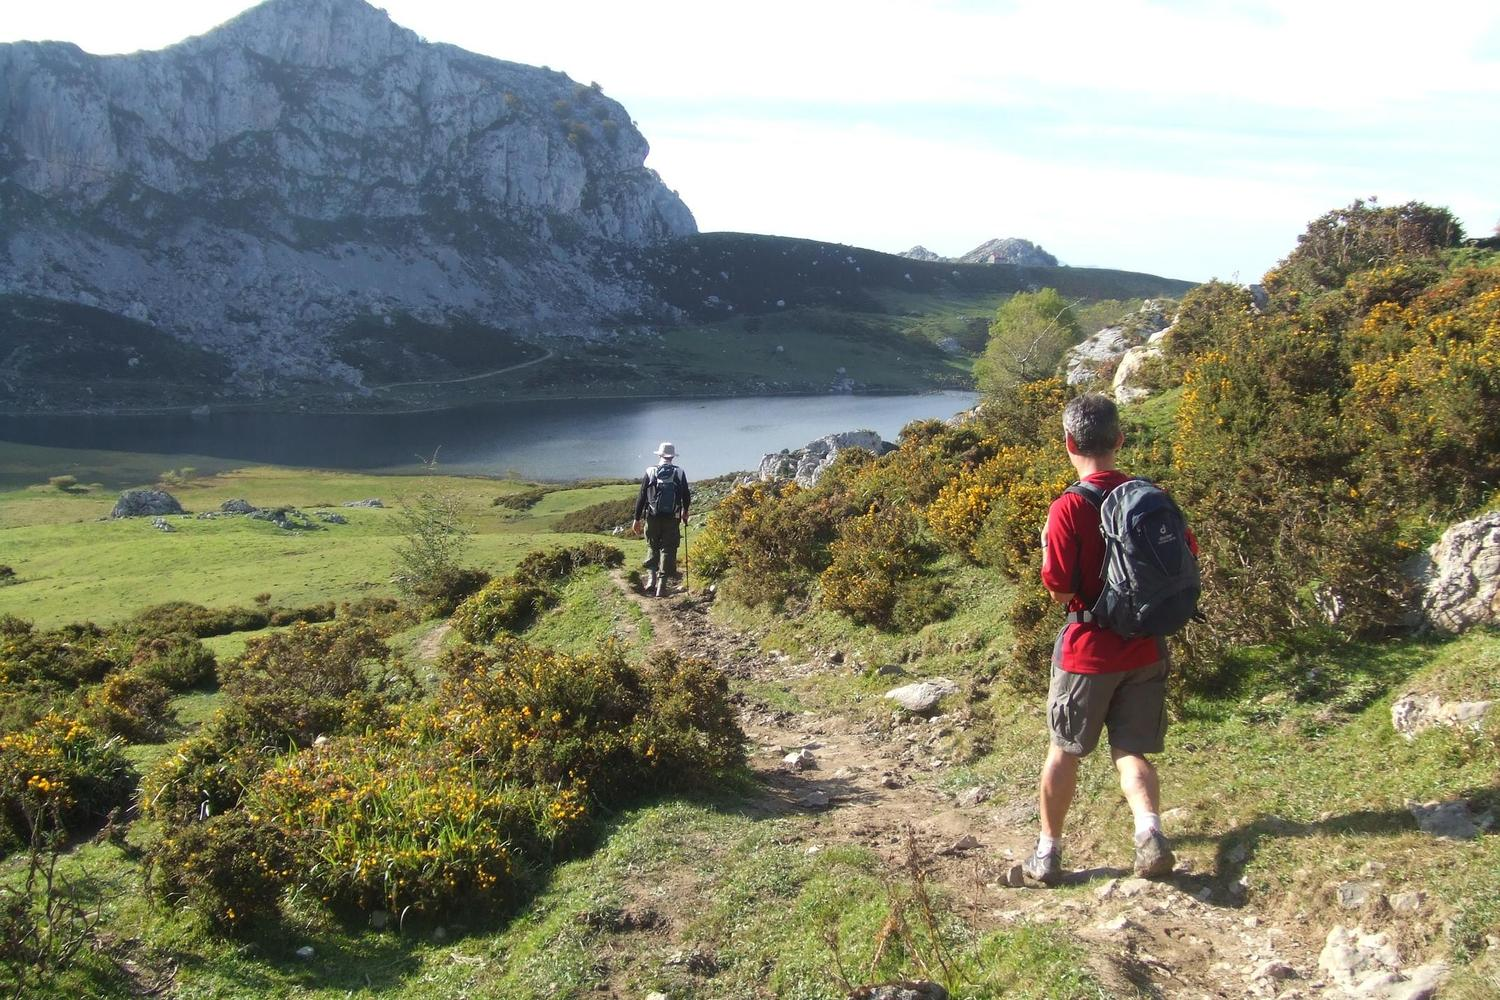 Late summer walking at the Lagos de Covadonga, Picos de Europa